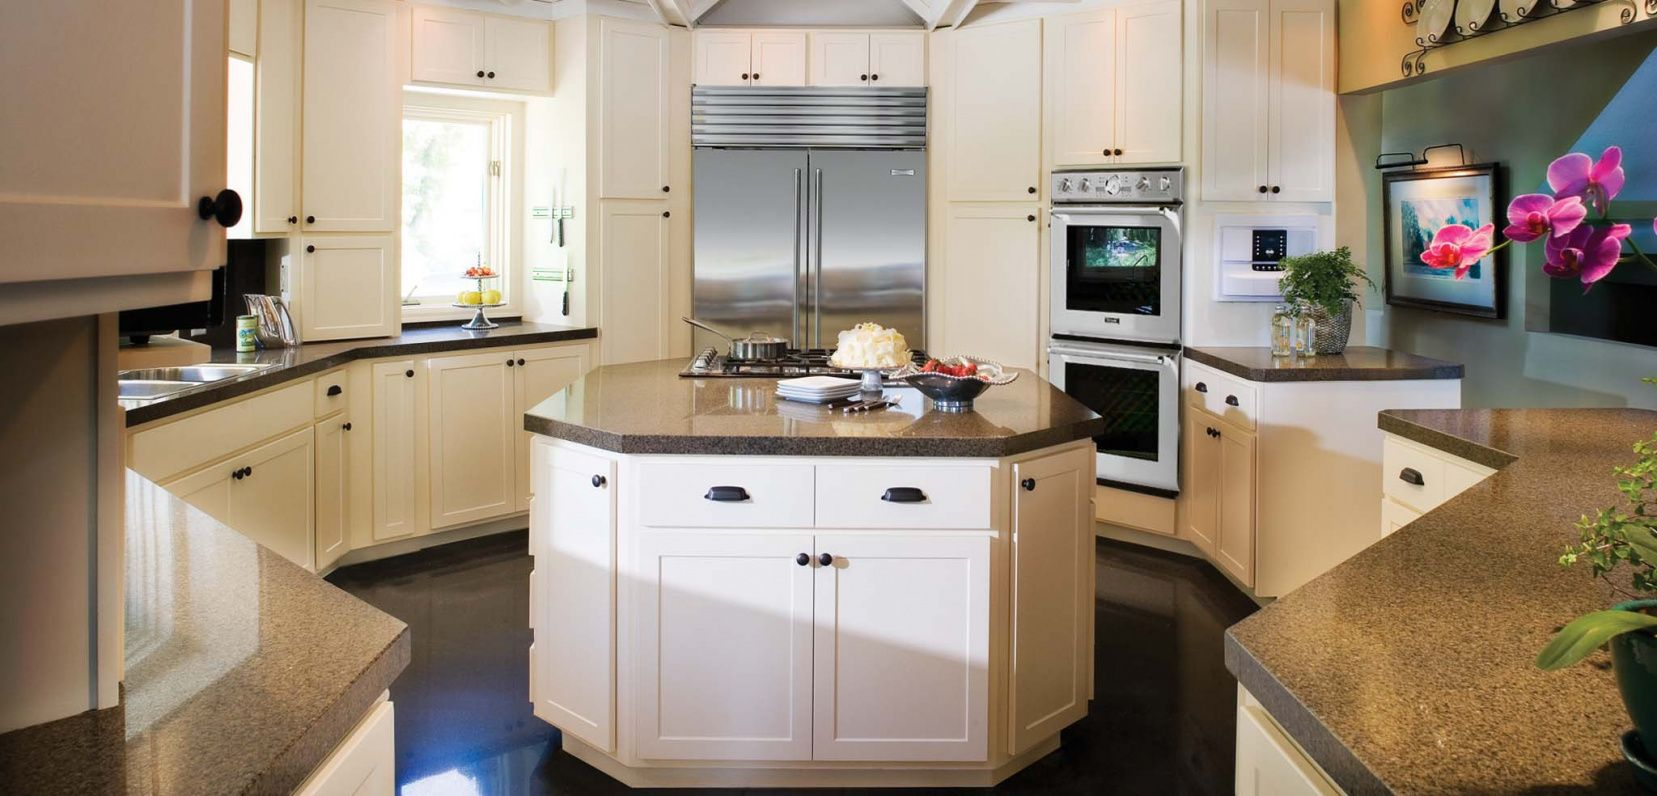 50 Granite Countertops That Go Over Existing Remodeling Ideas For Kitchens Check More